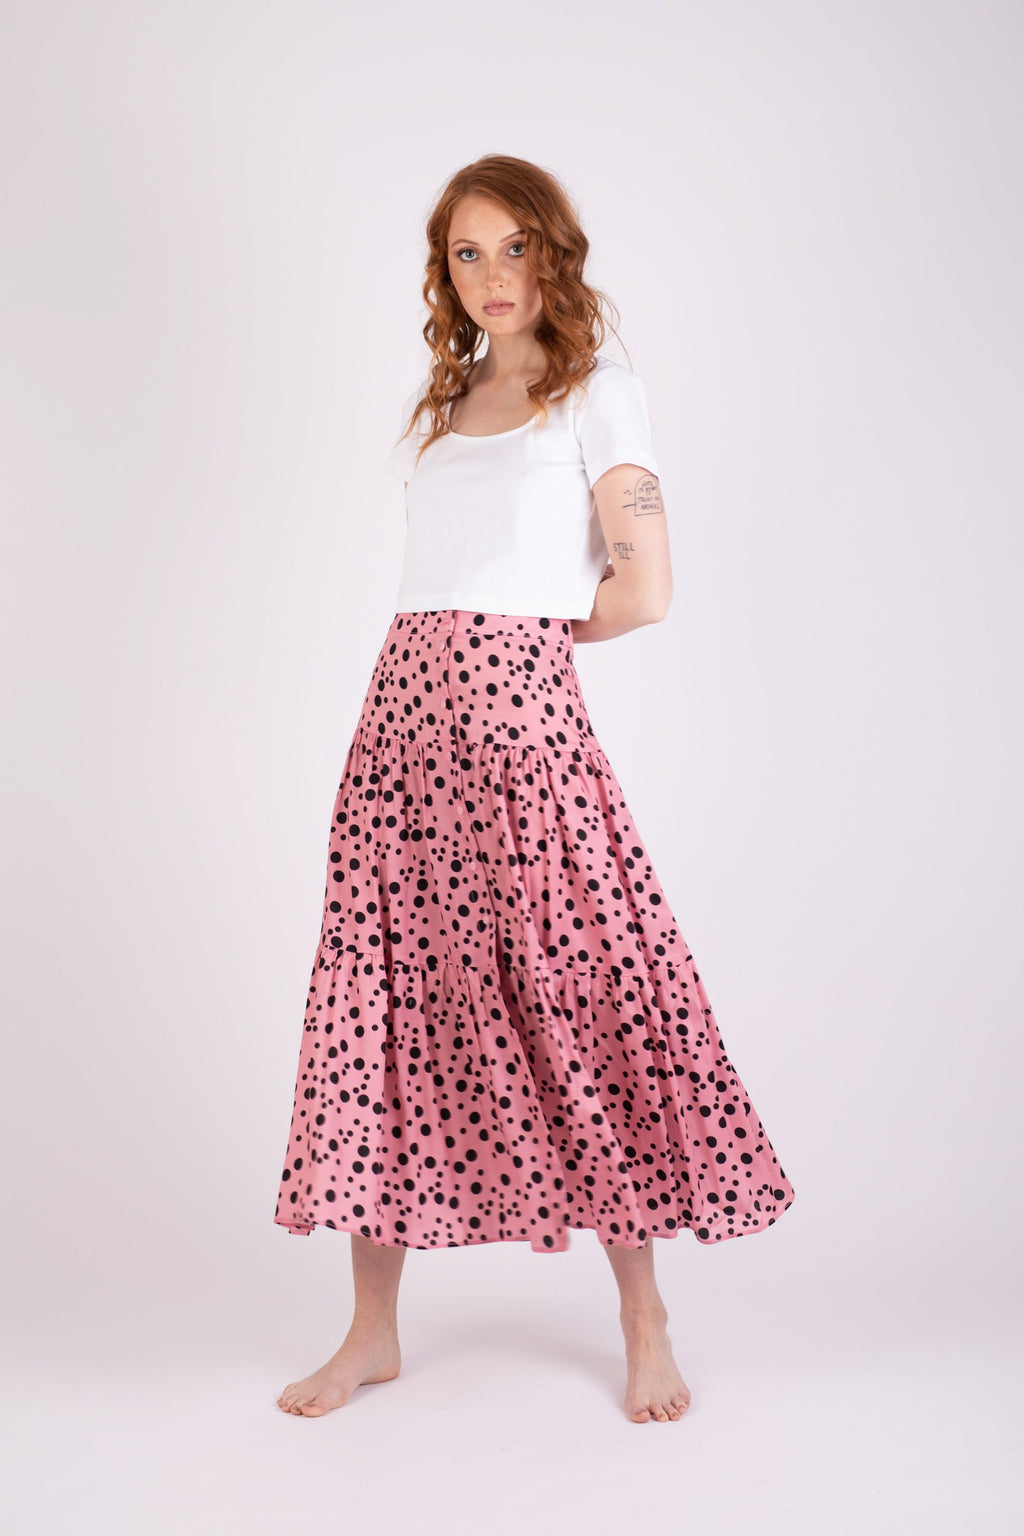 Valencia Skirt Pink Random Dot Skirts Ethical Sustainable Vegan Organic Australian fashion womens clothes